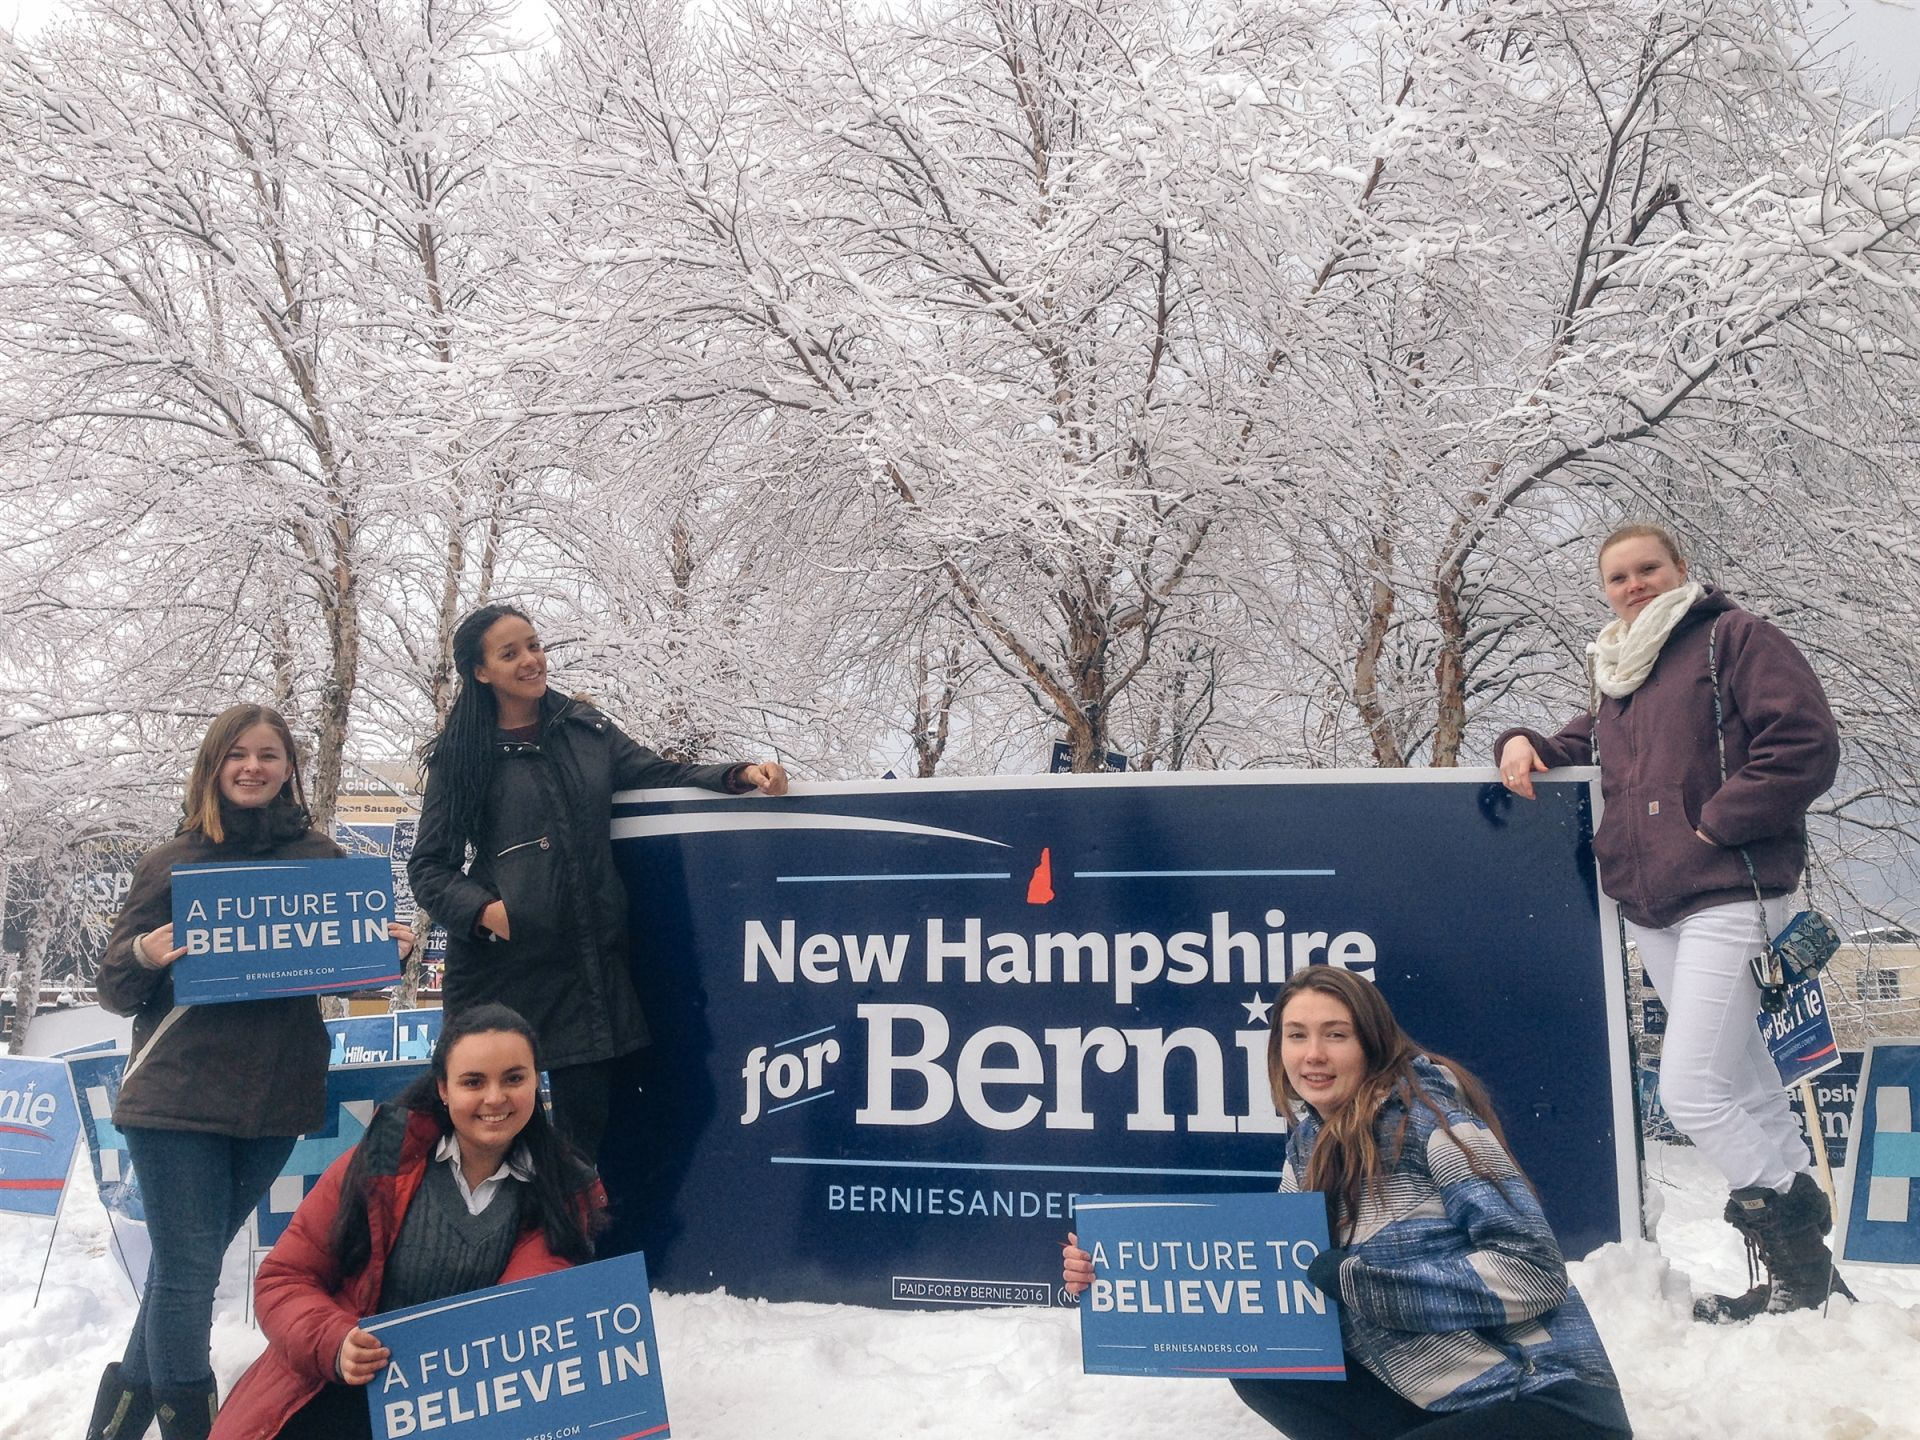 Despite the snow, many students made it out to see the candidates!